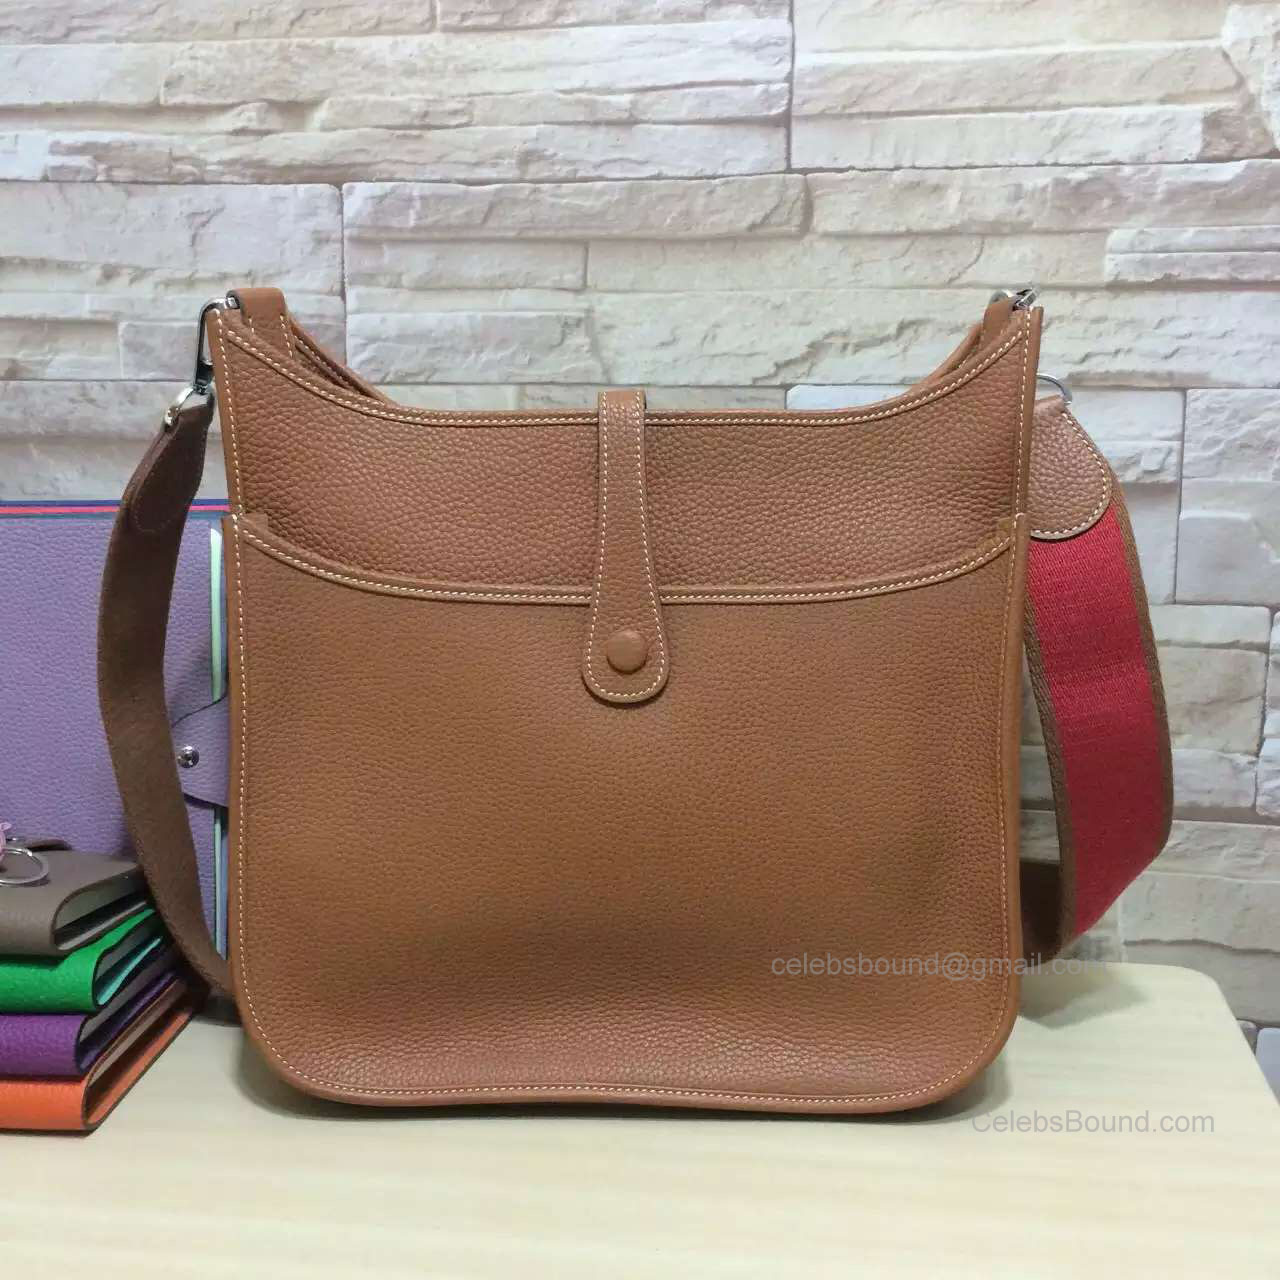 Hermes Evelyne III Bag PM in Brown Togo Leather